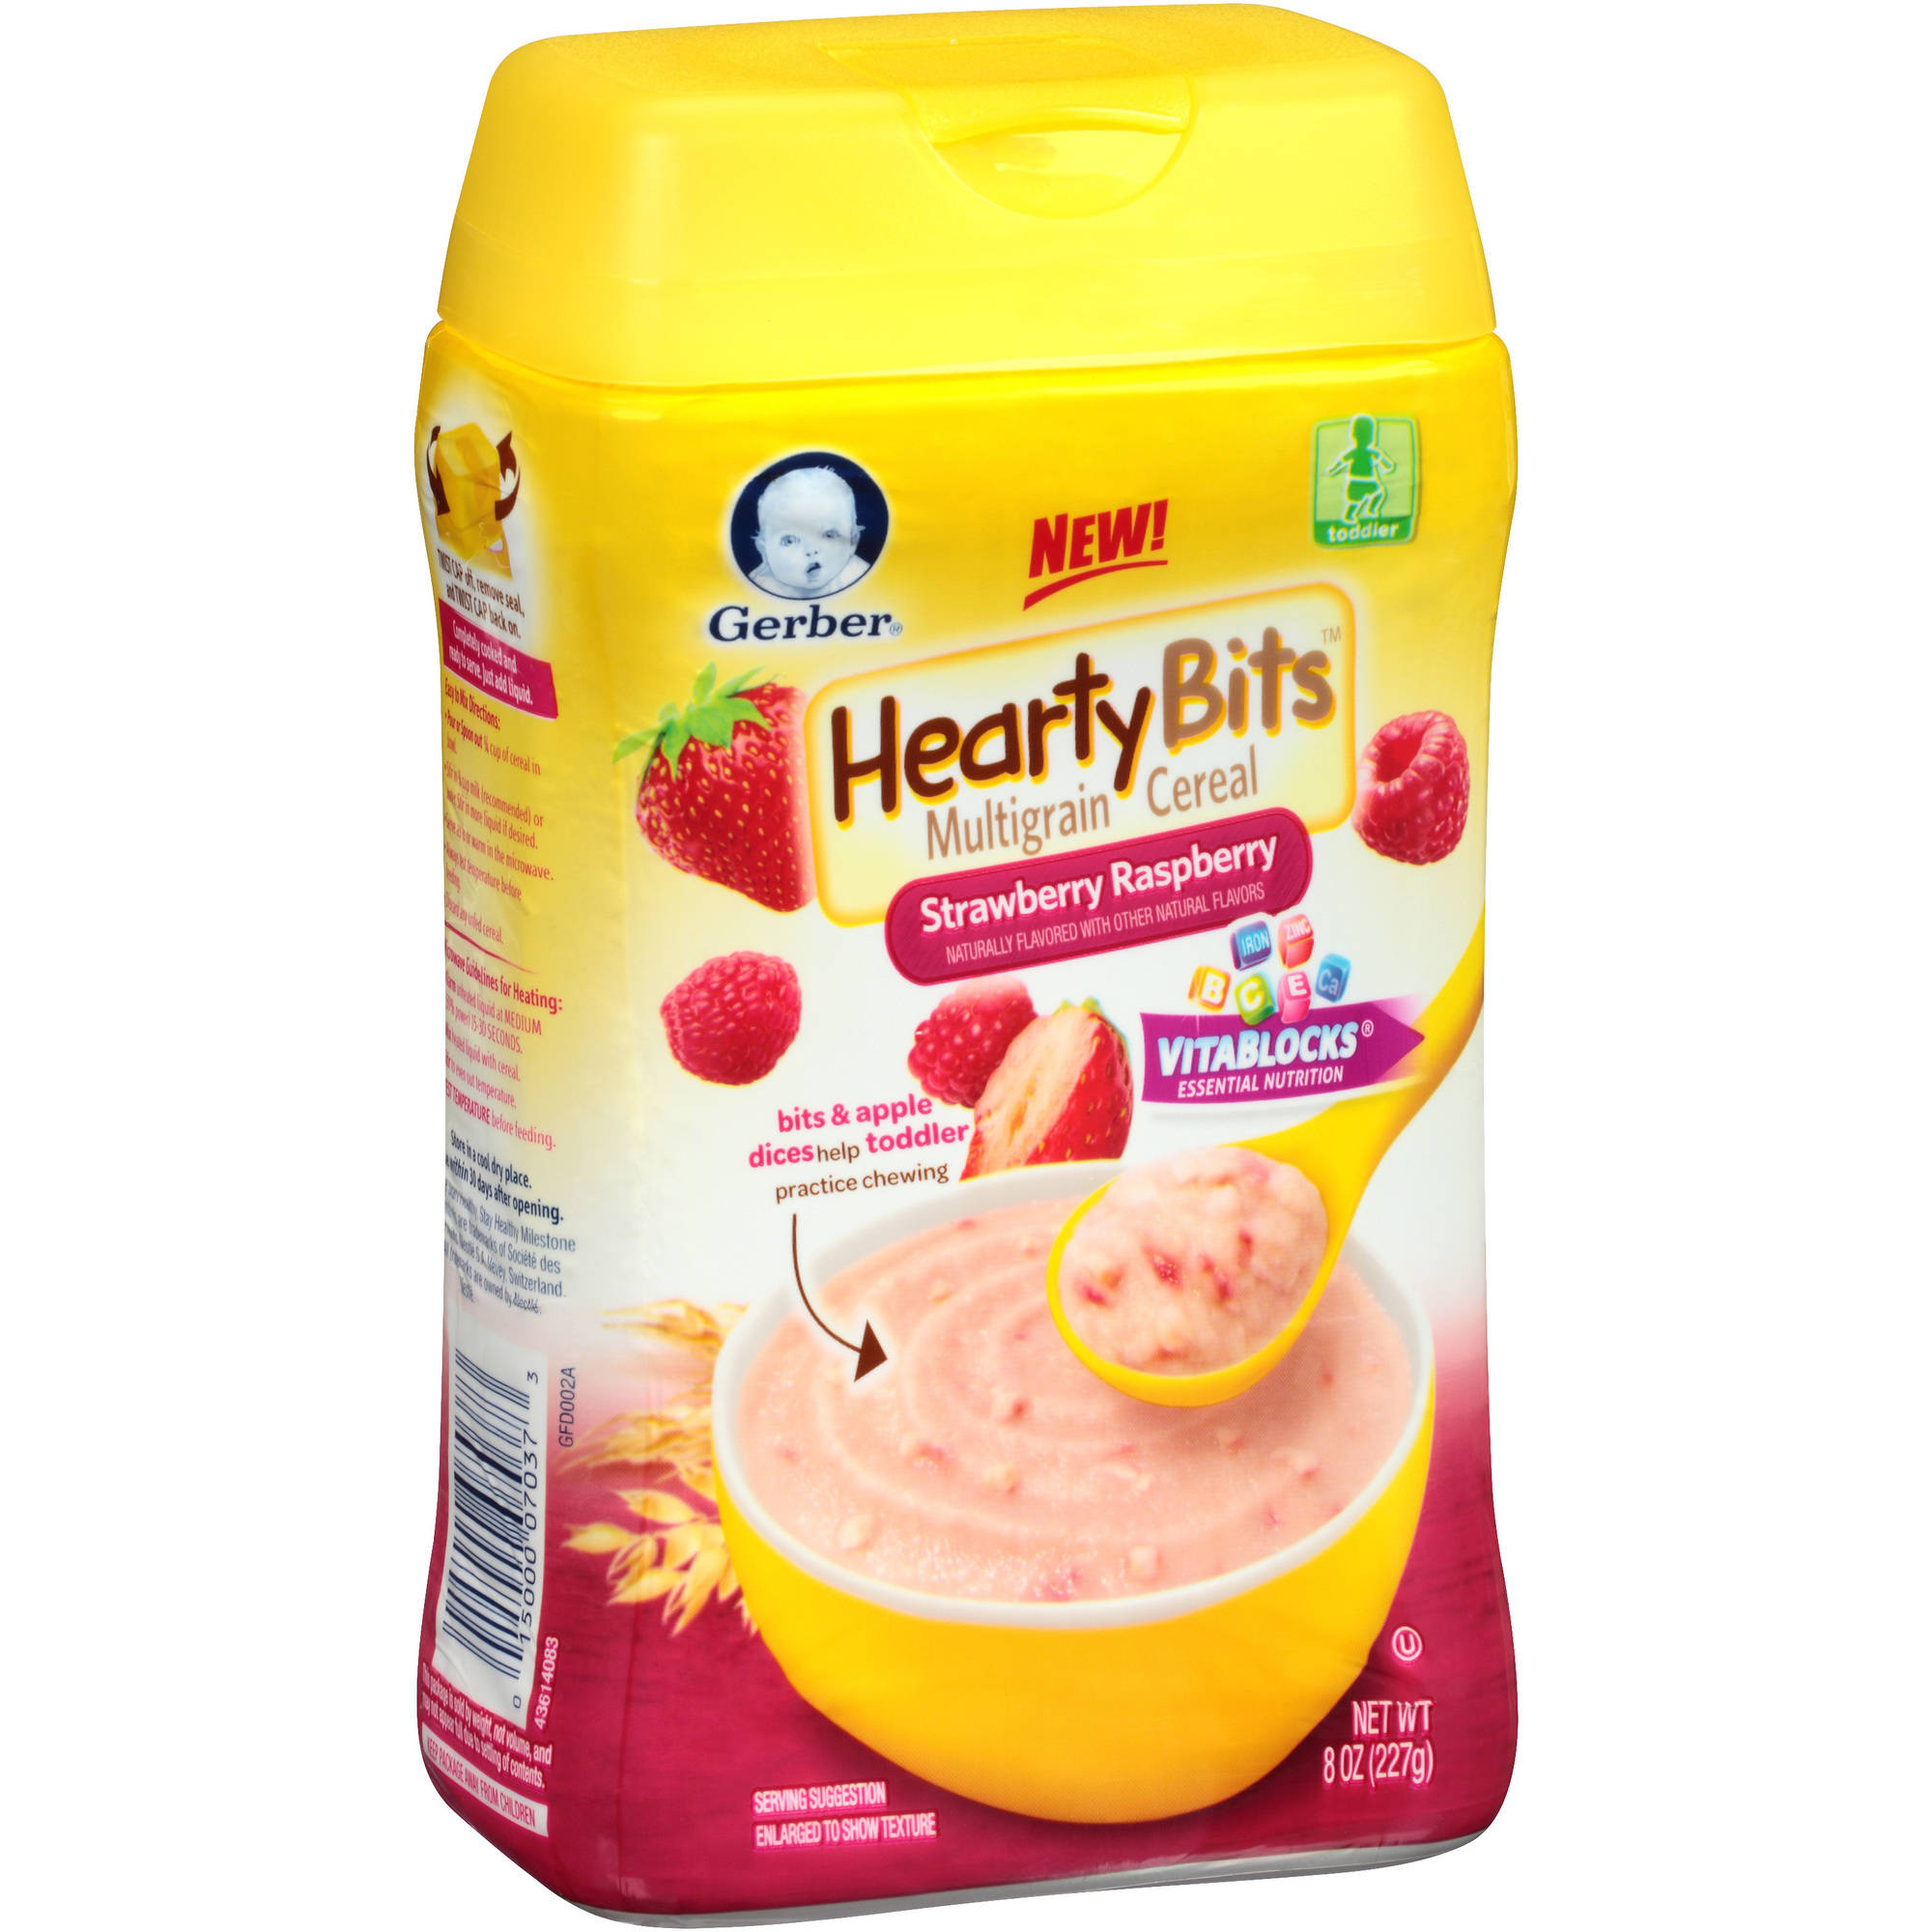 Gerber Hearty Bits Multigrain Strawberry Raspberry Cereal, 8 Ounce